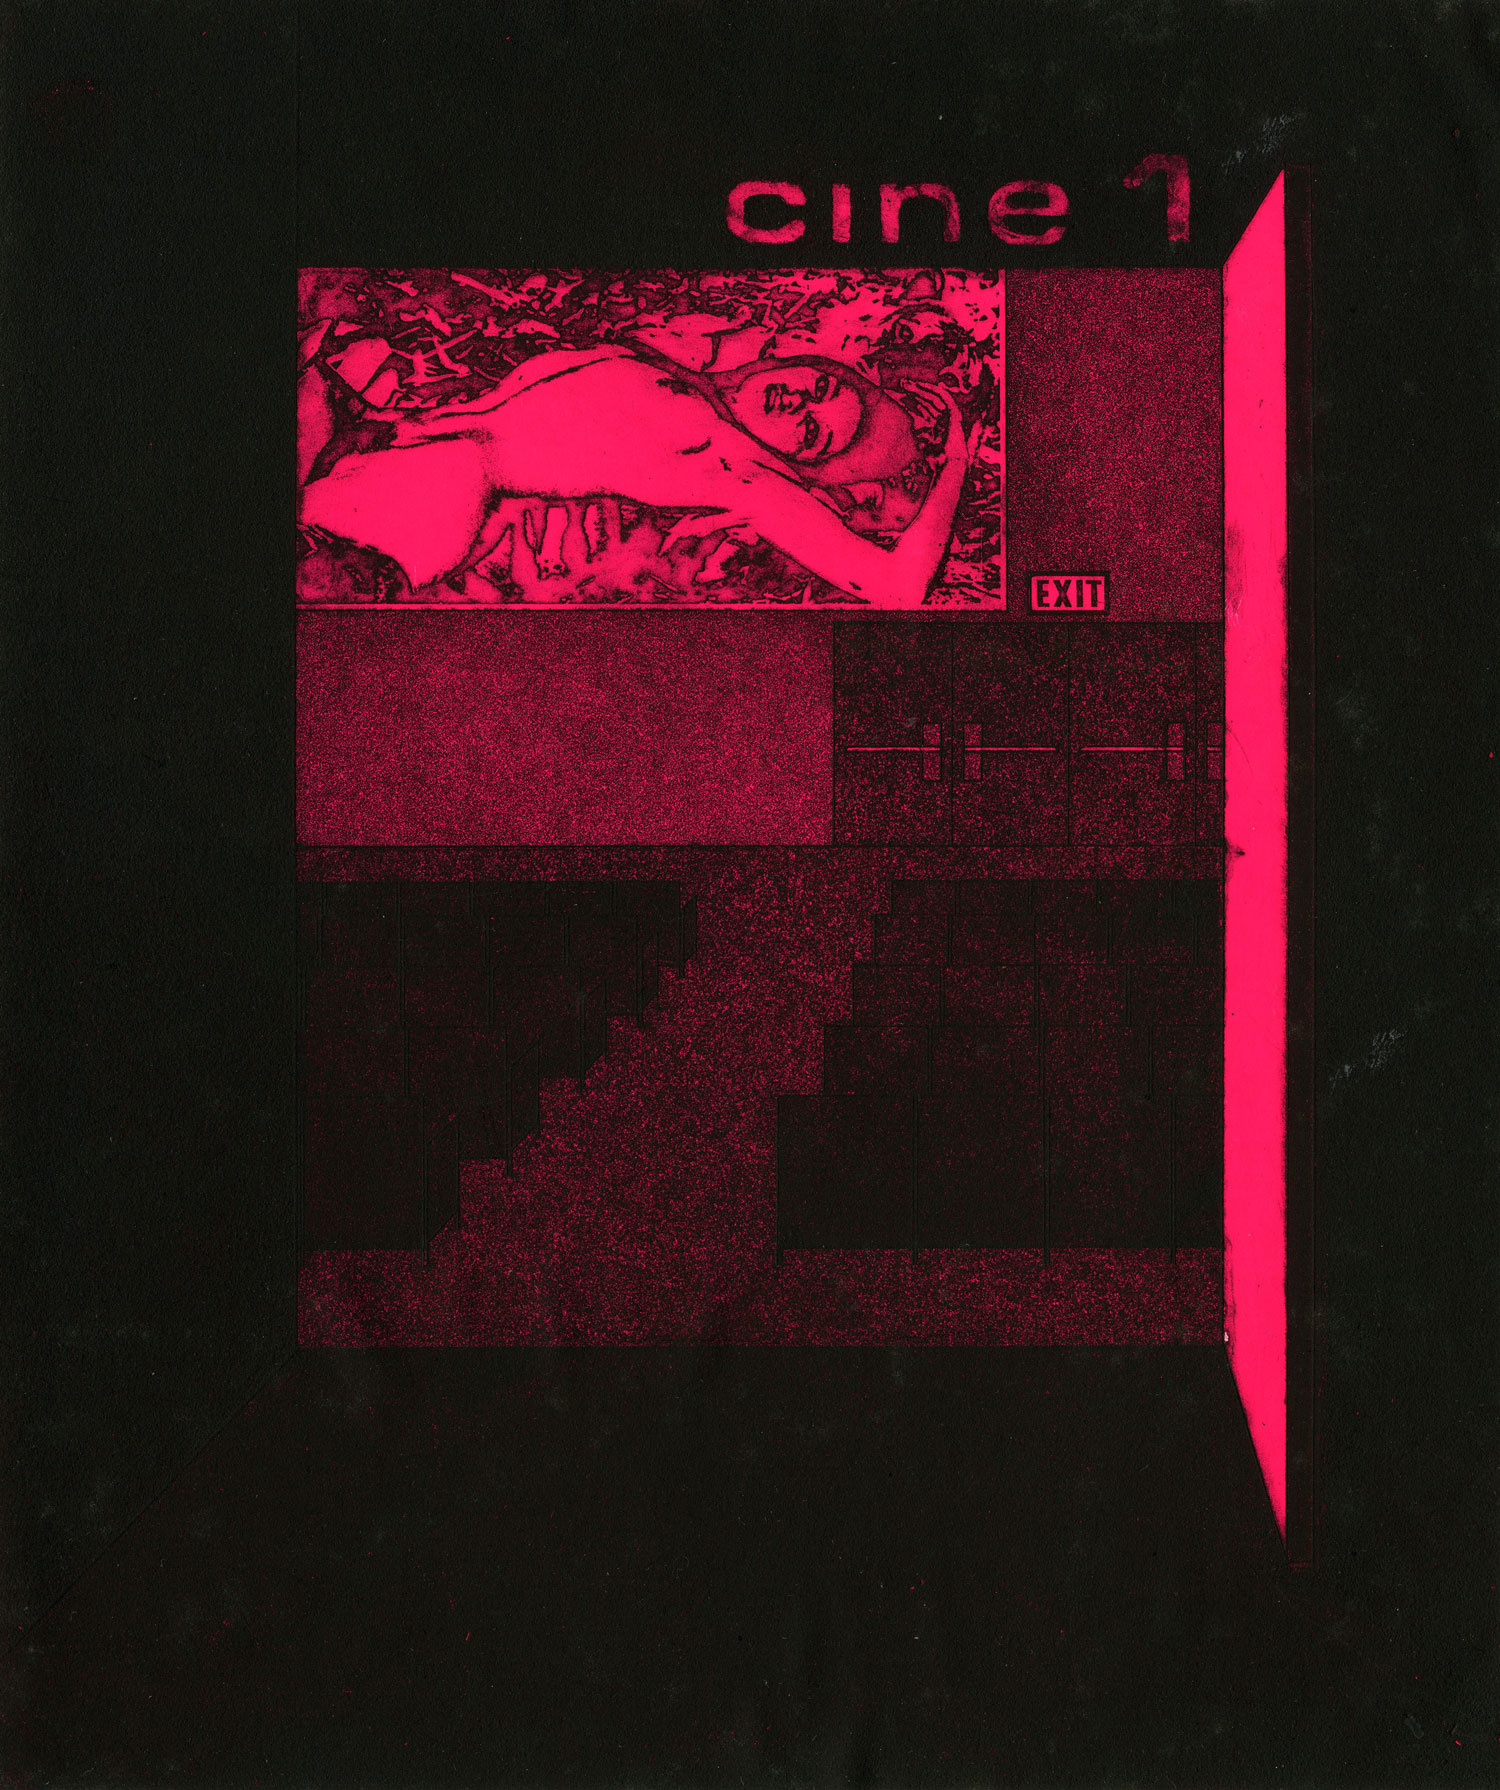 Continuous Shows: Cine 1